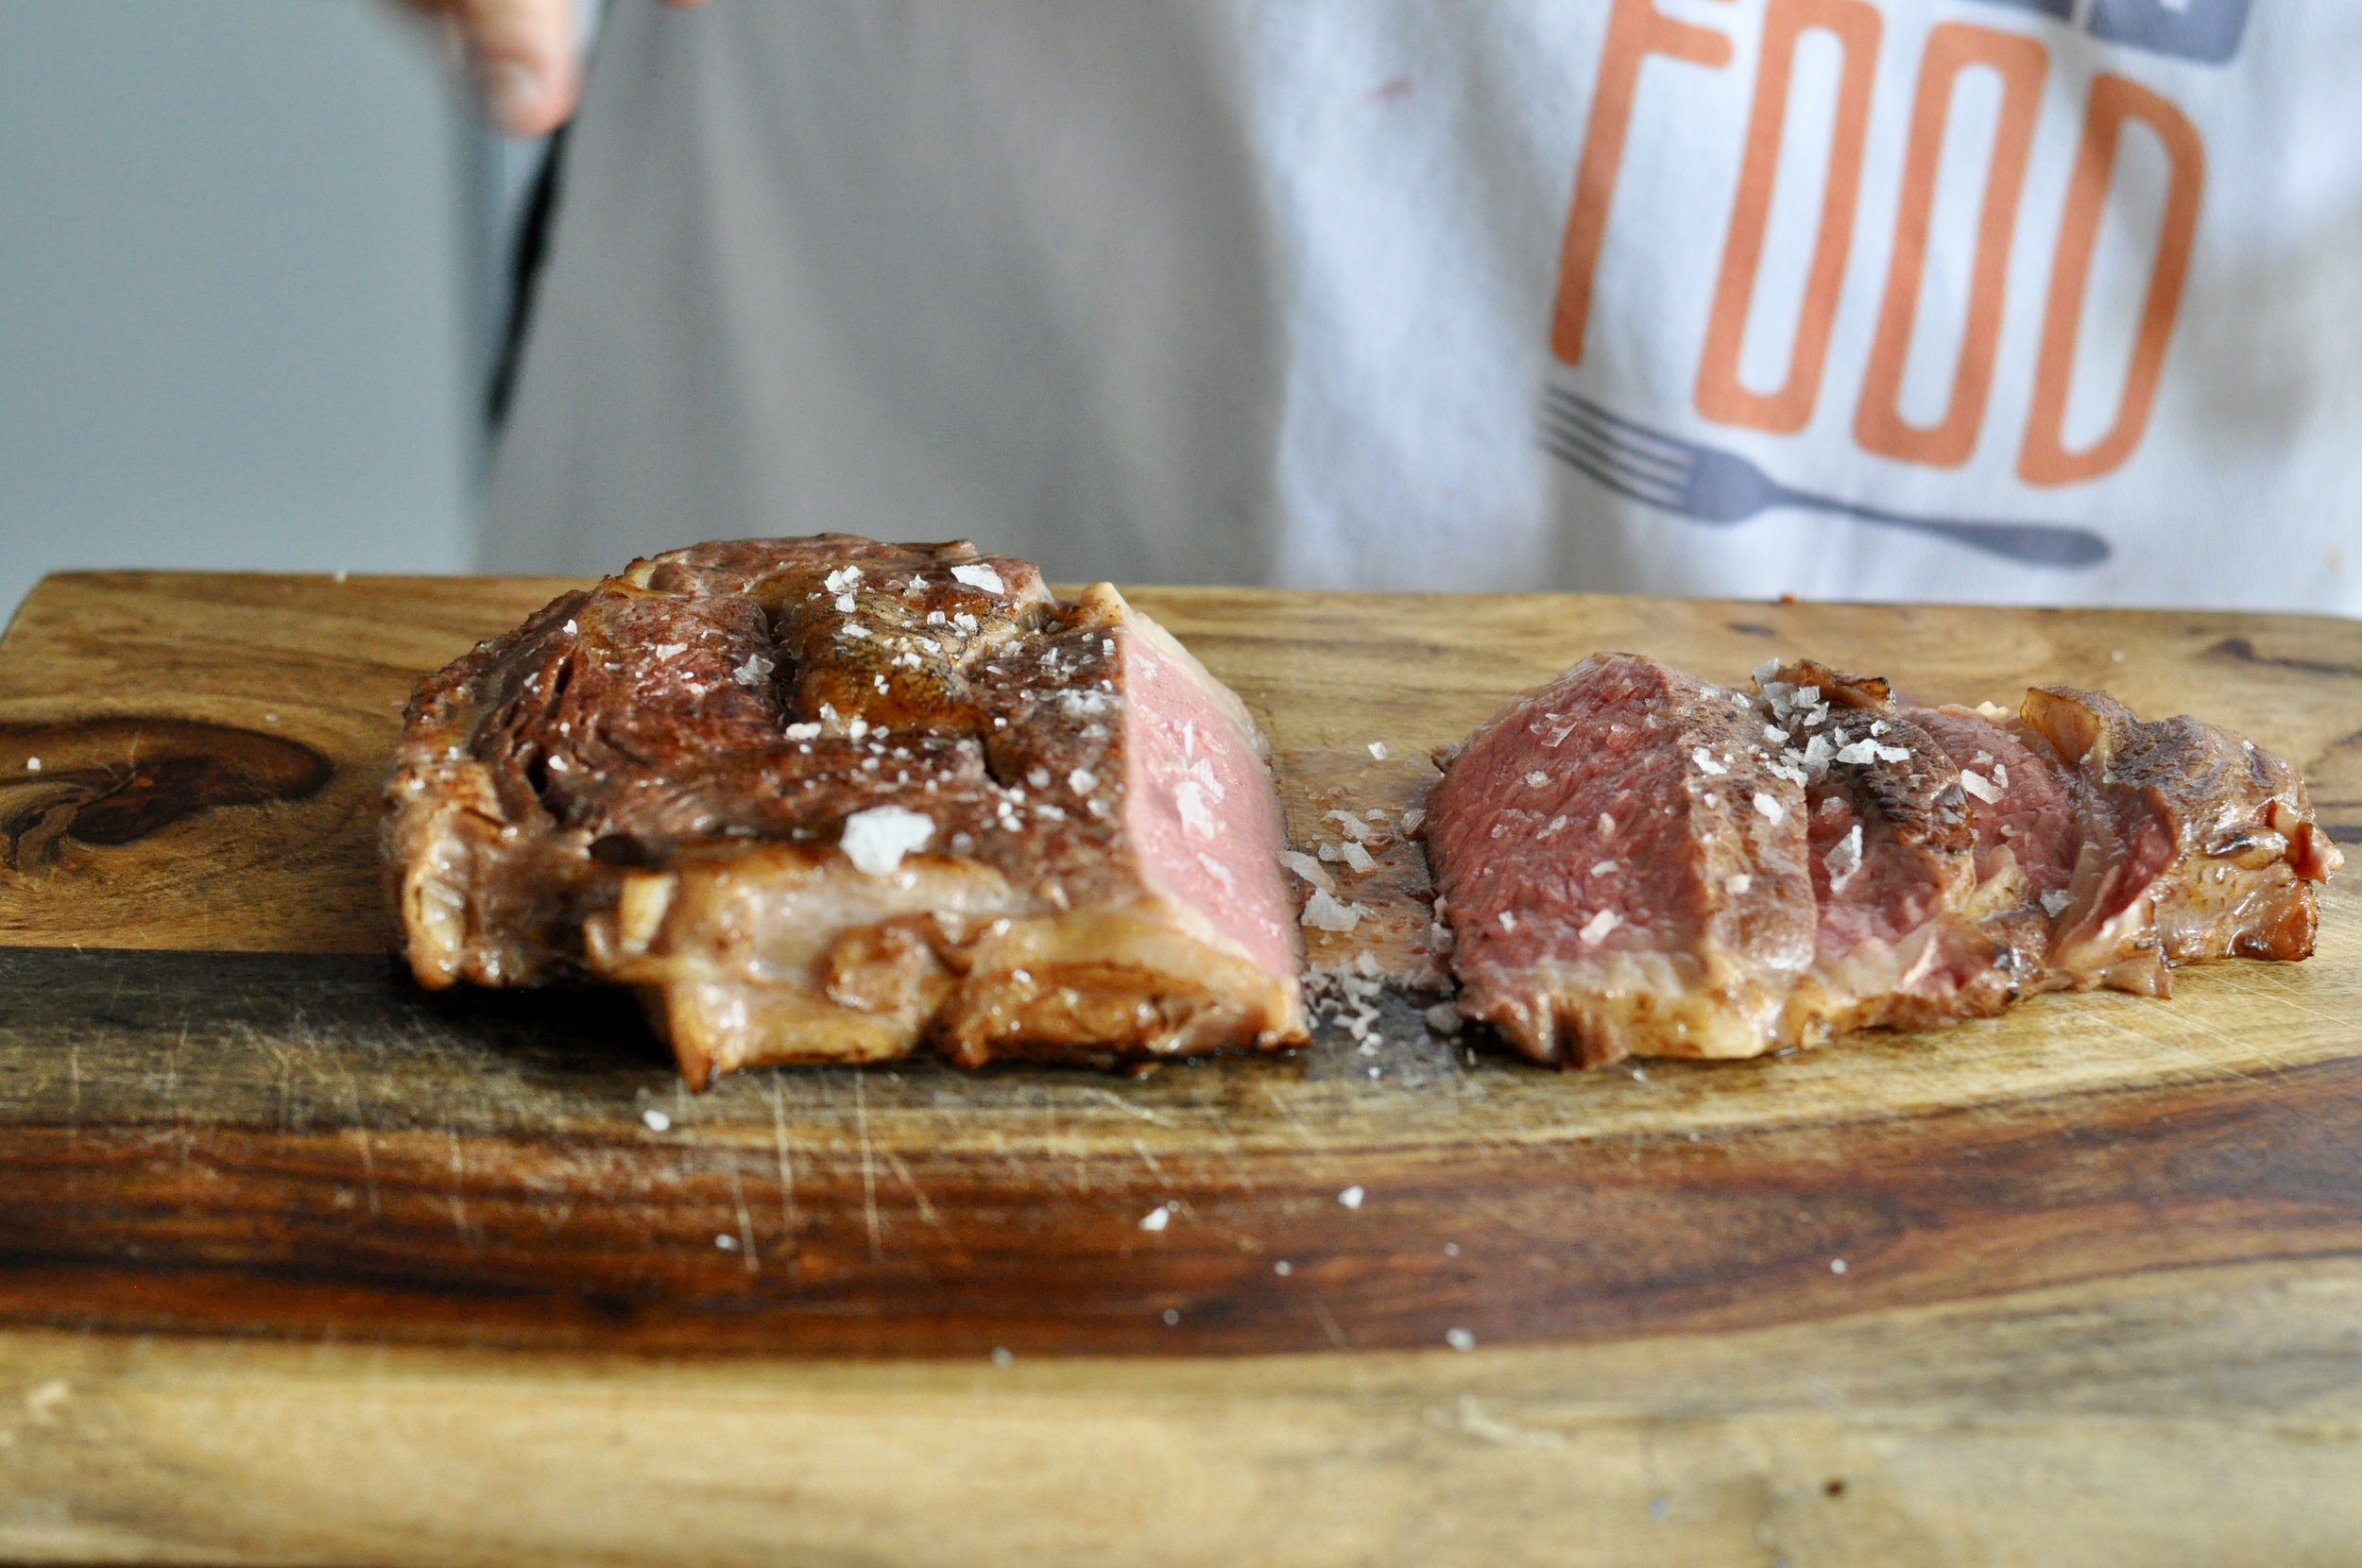 Perfectly pink sous vide steak